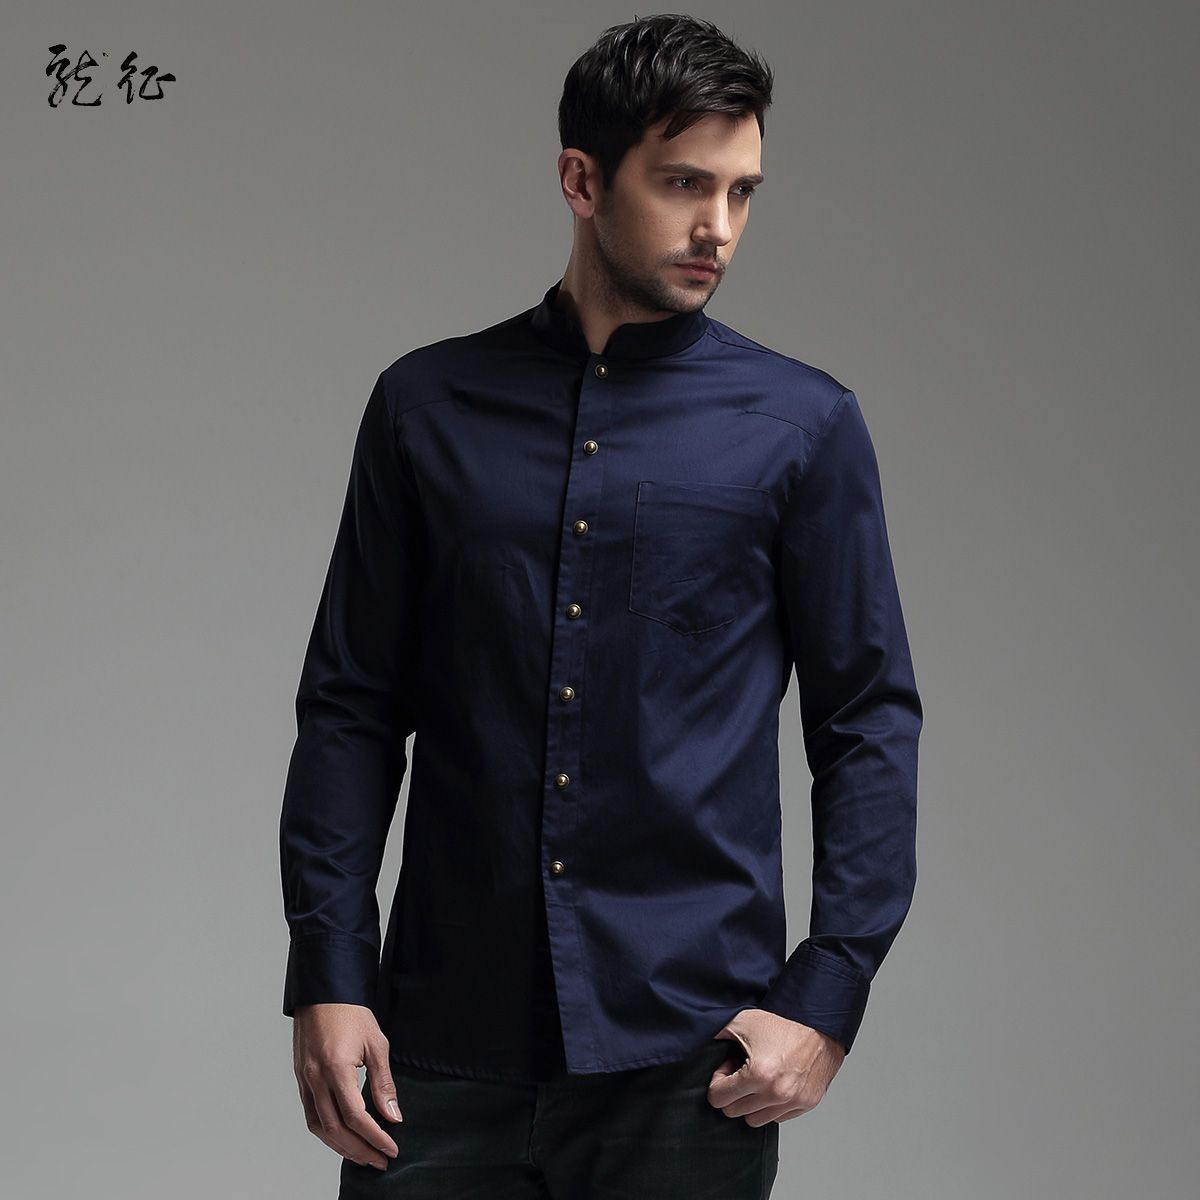 Modern Mandarin Collar Snap Button Shirt - Dark Blue - Chinese ...